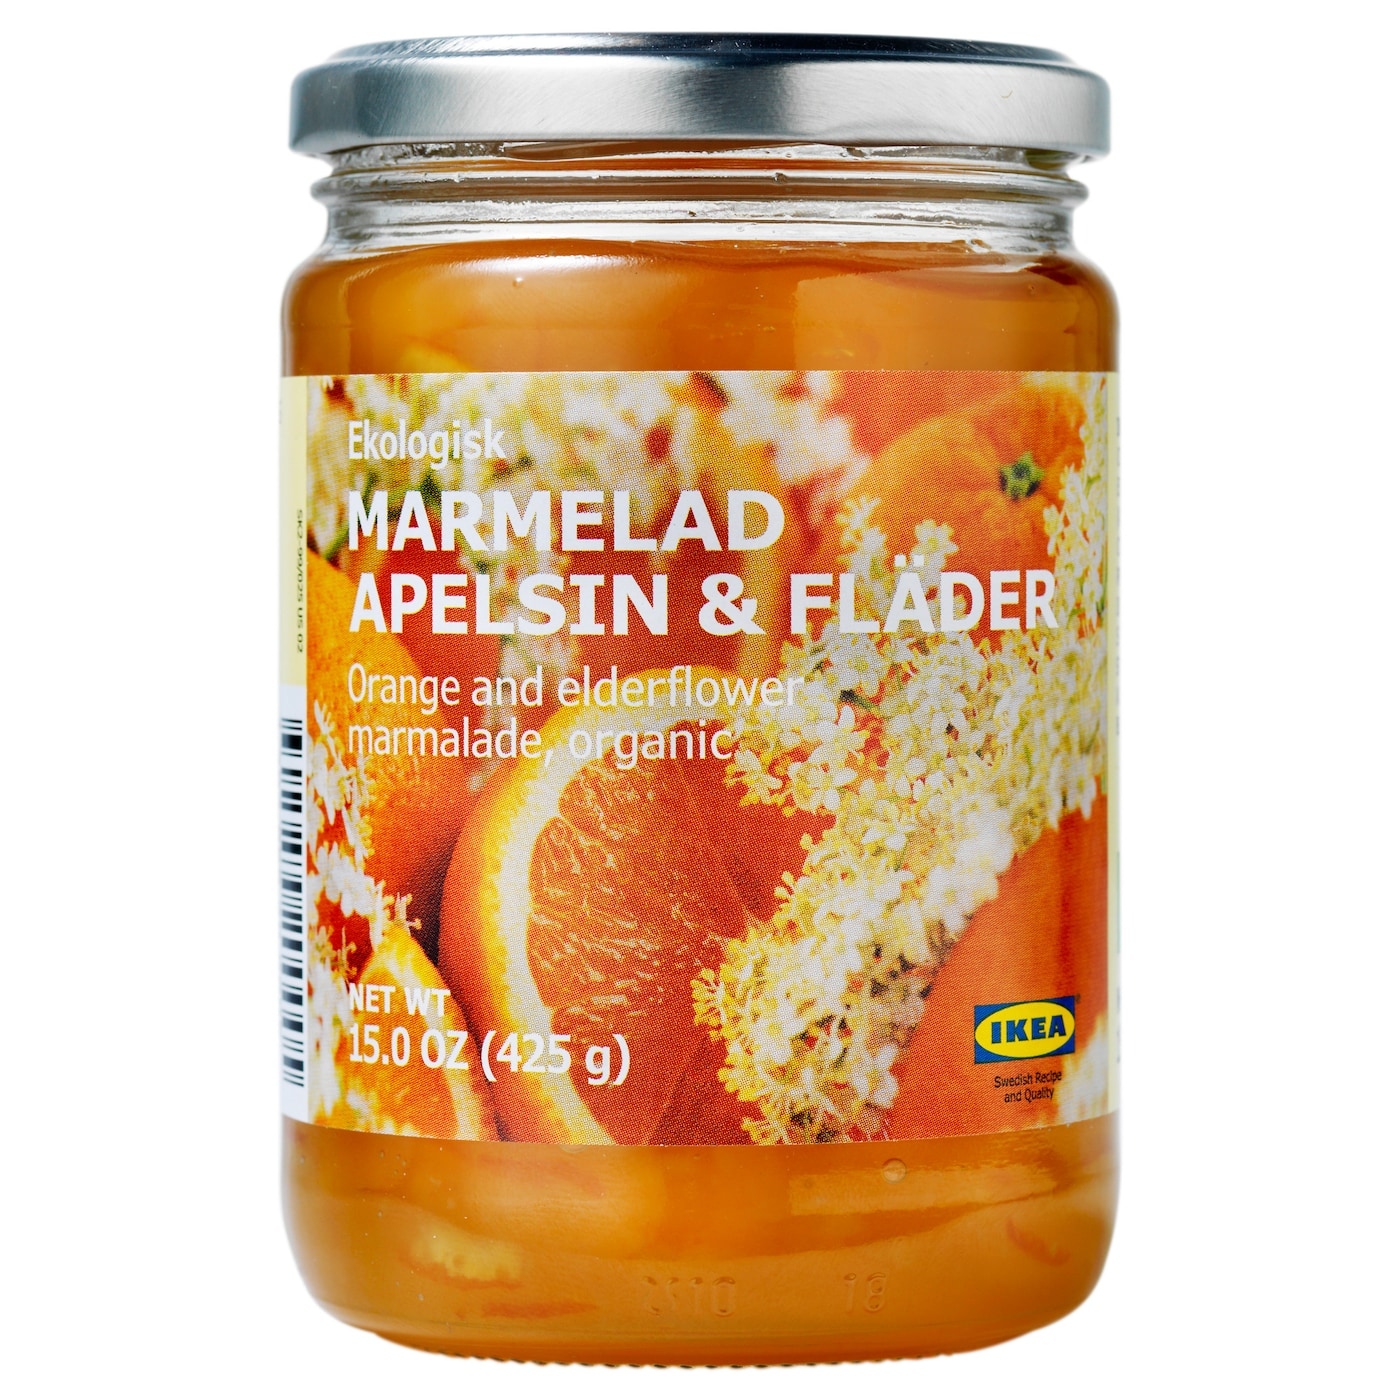 IKEA MARMELAD APELSIN & FLÄDER orange- and elderflower marmalade